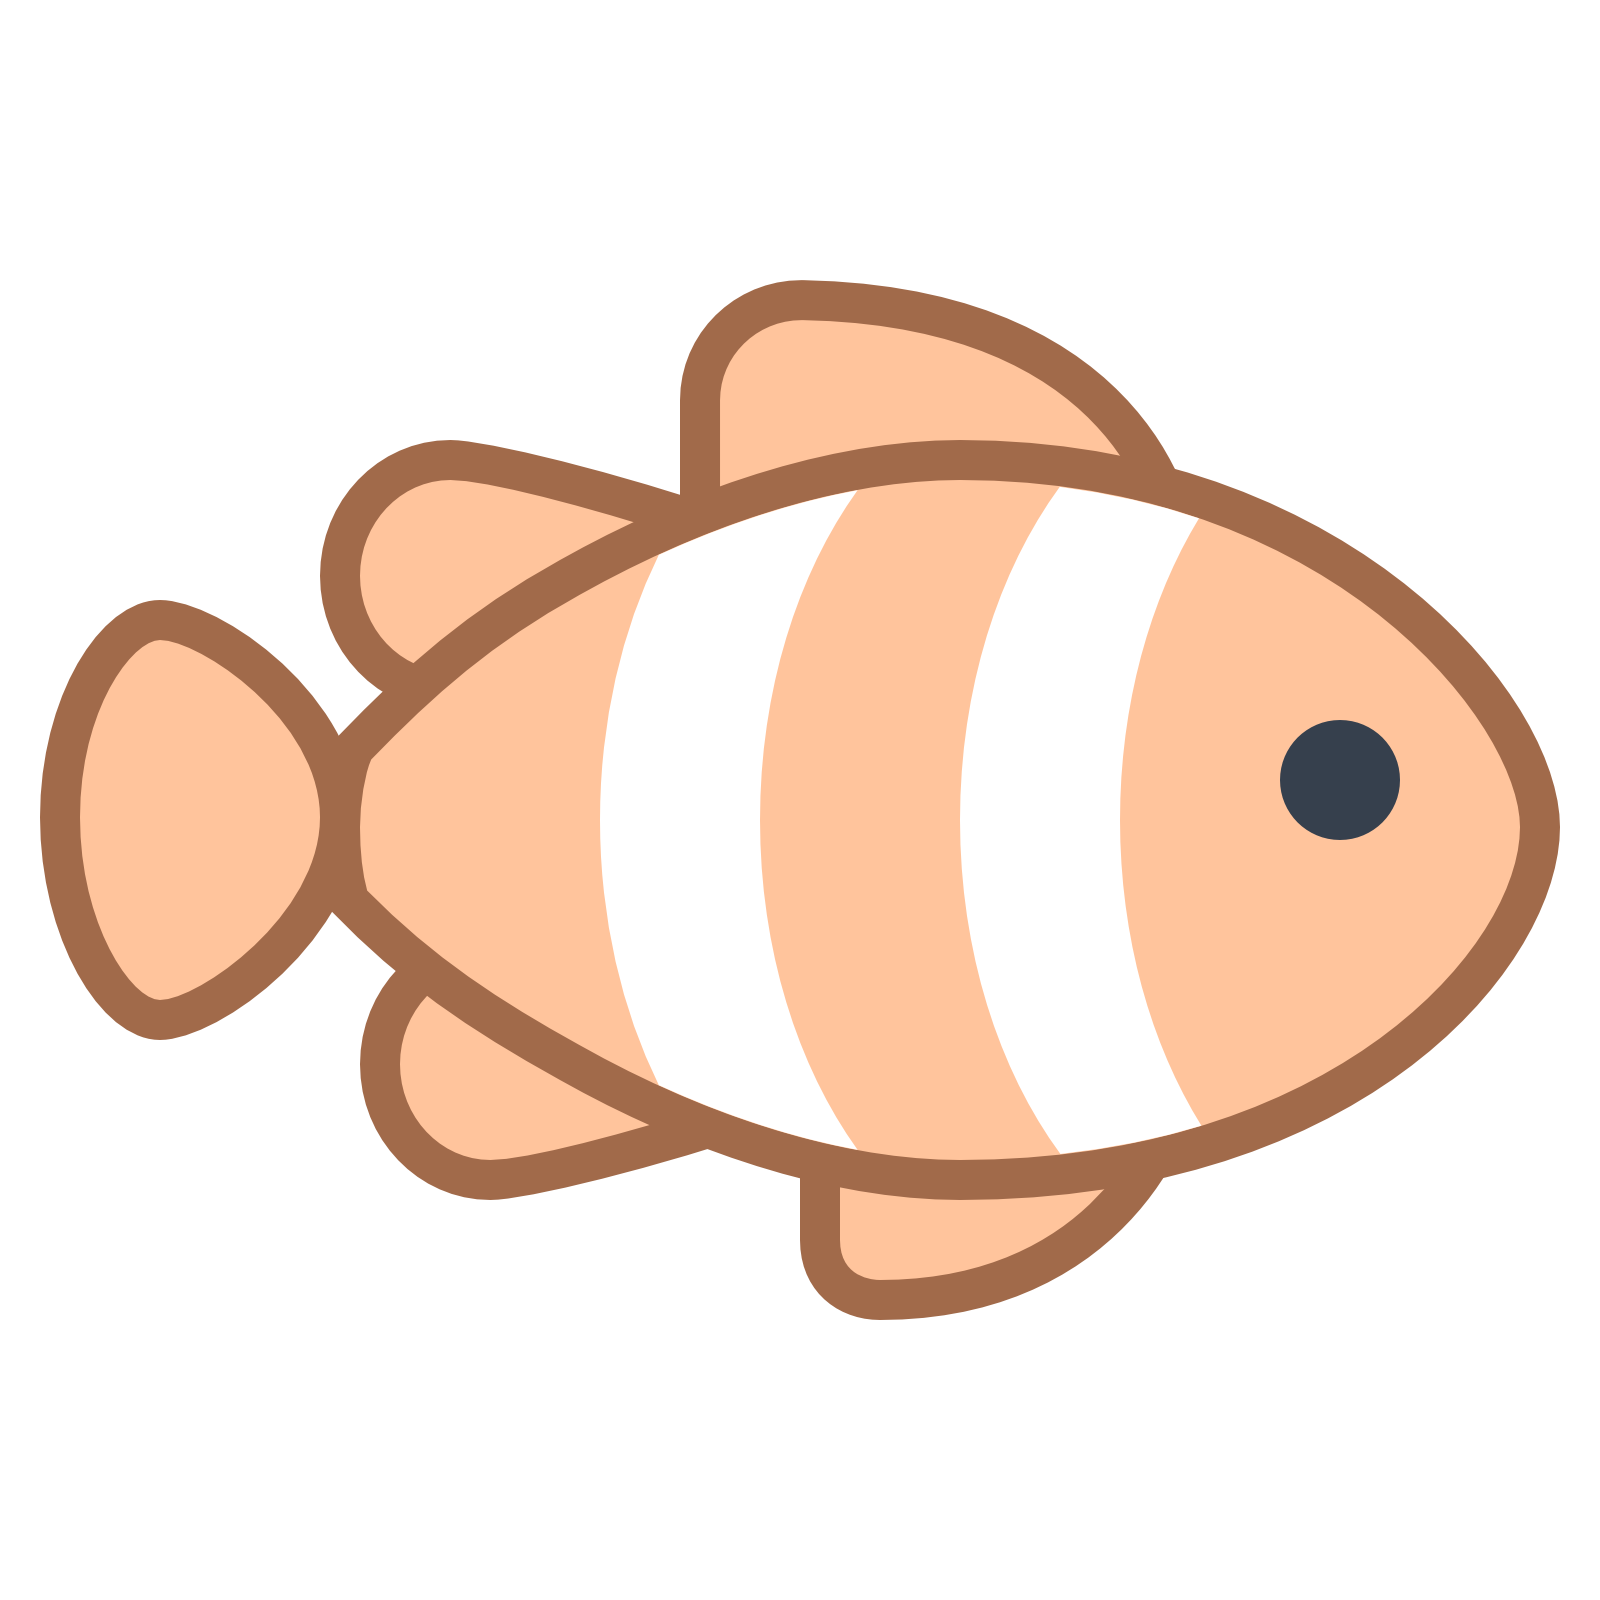 Clown Fish Clipart | Free download best Clown Fish Clipart on ... banner black and white library